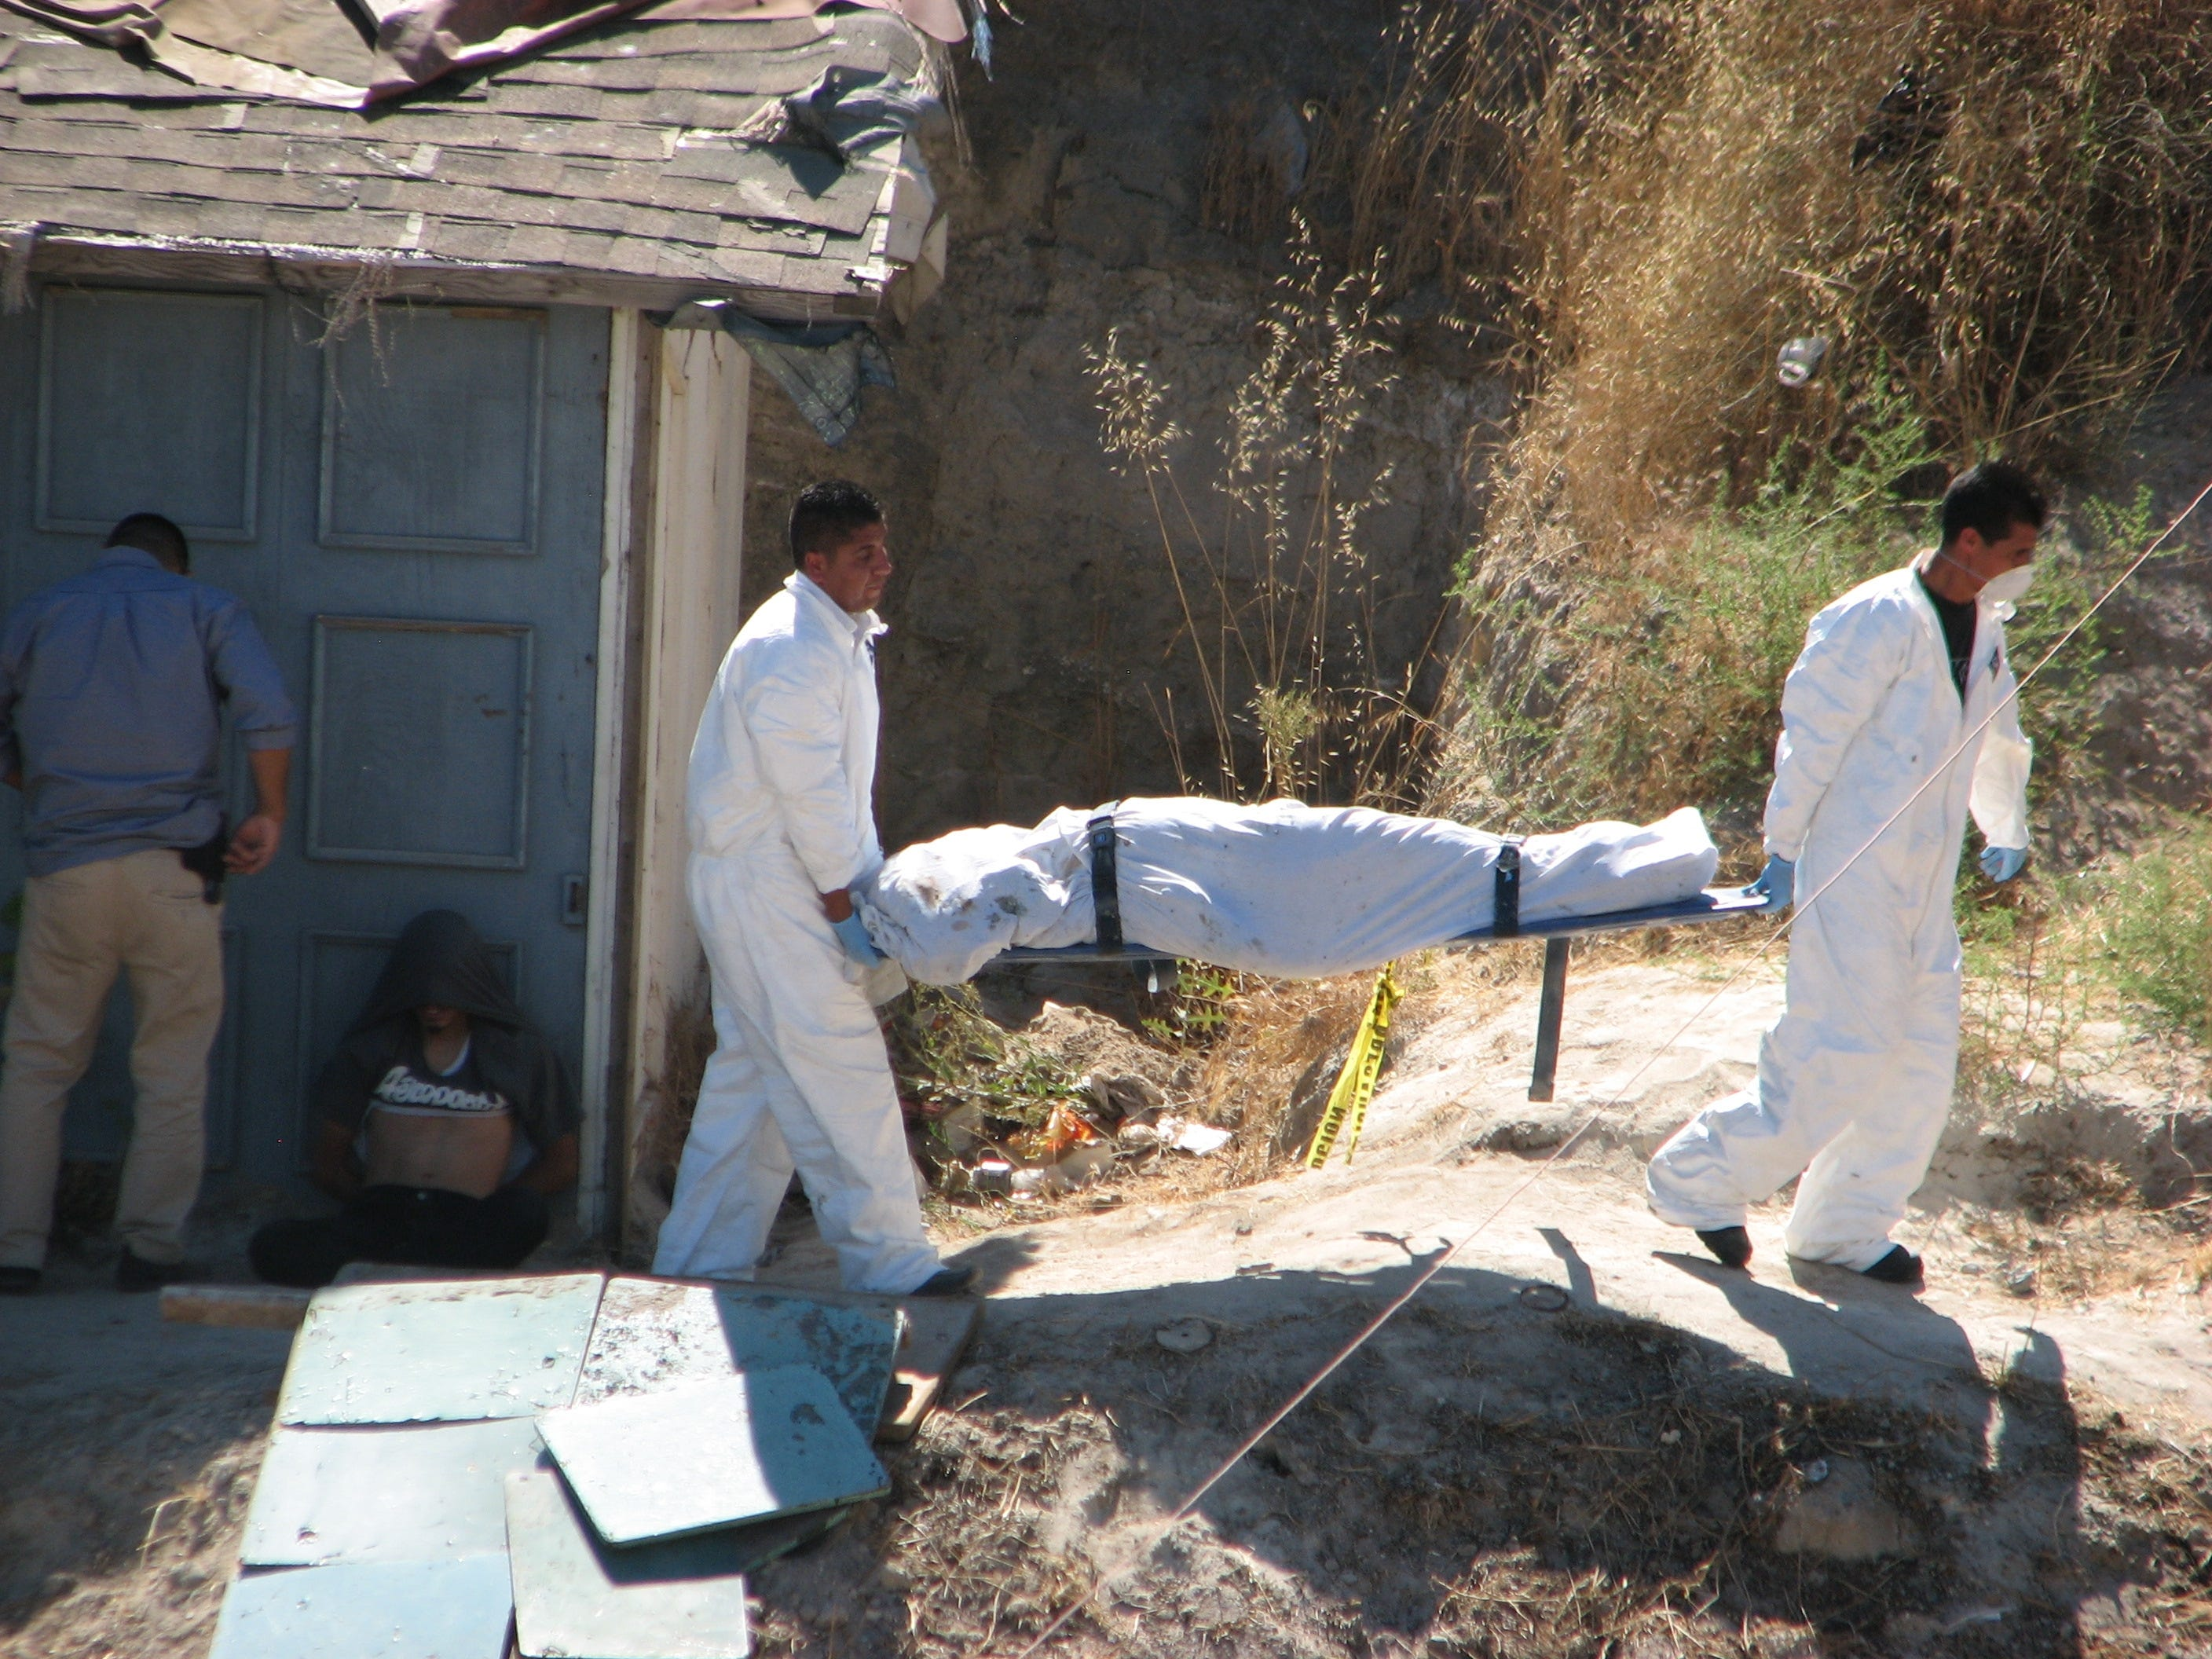 CJNG is blamed for several mass graves, leaving bodies of men and women stacked in houses or shallow pits.